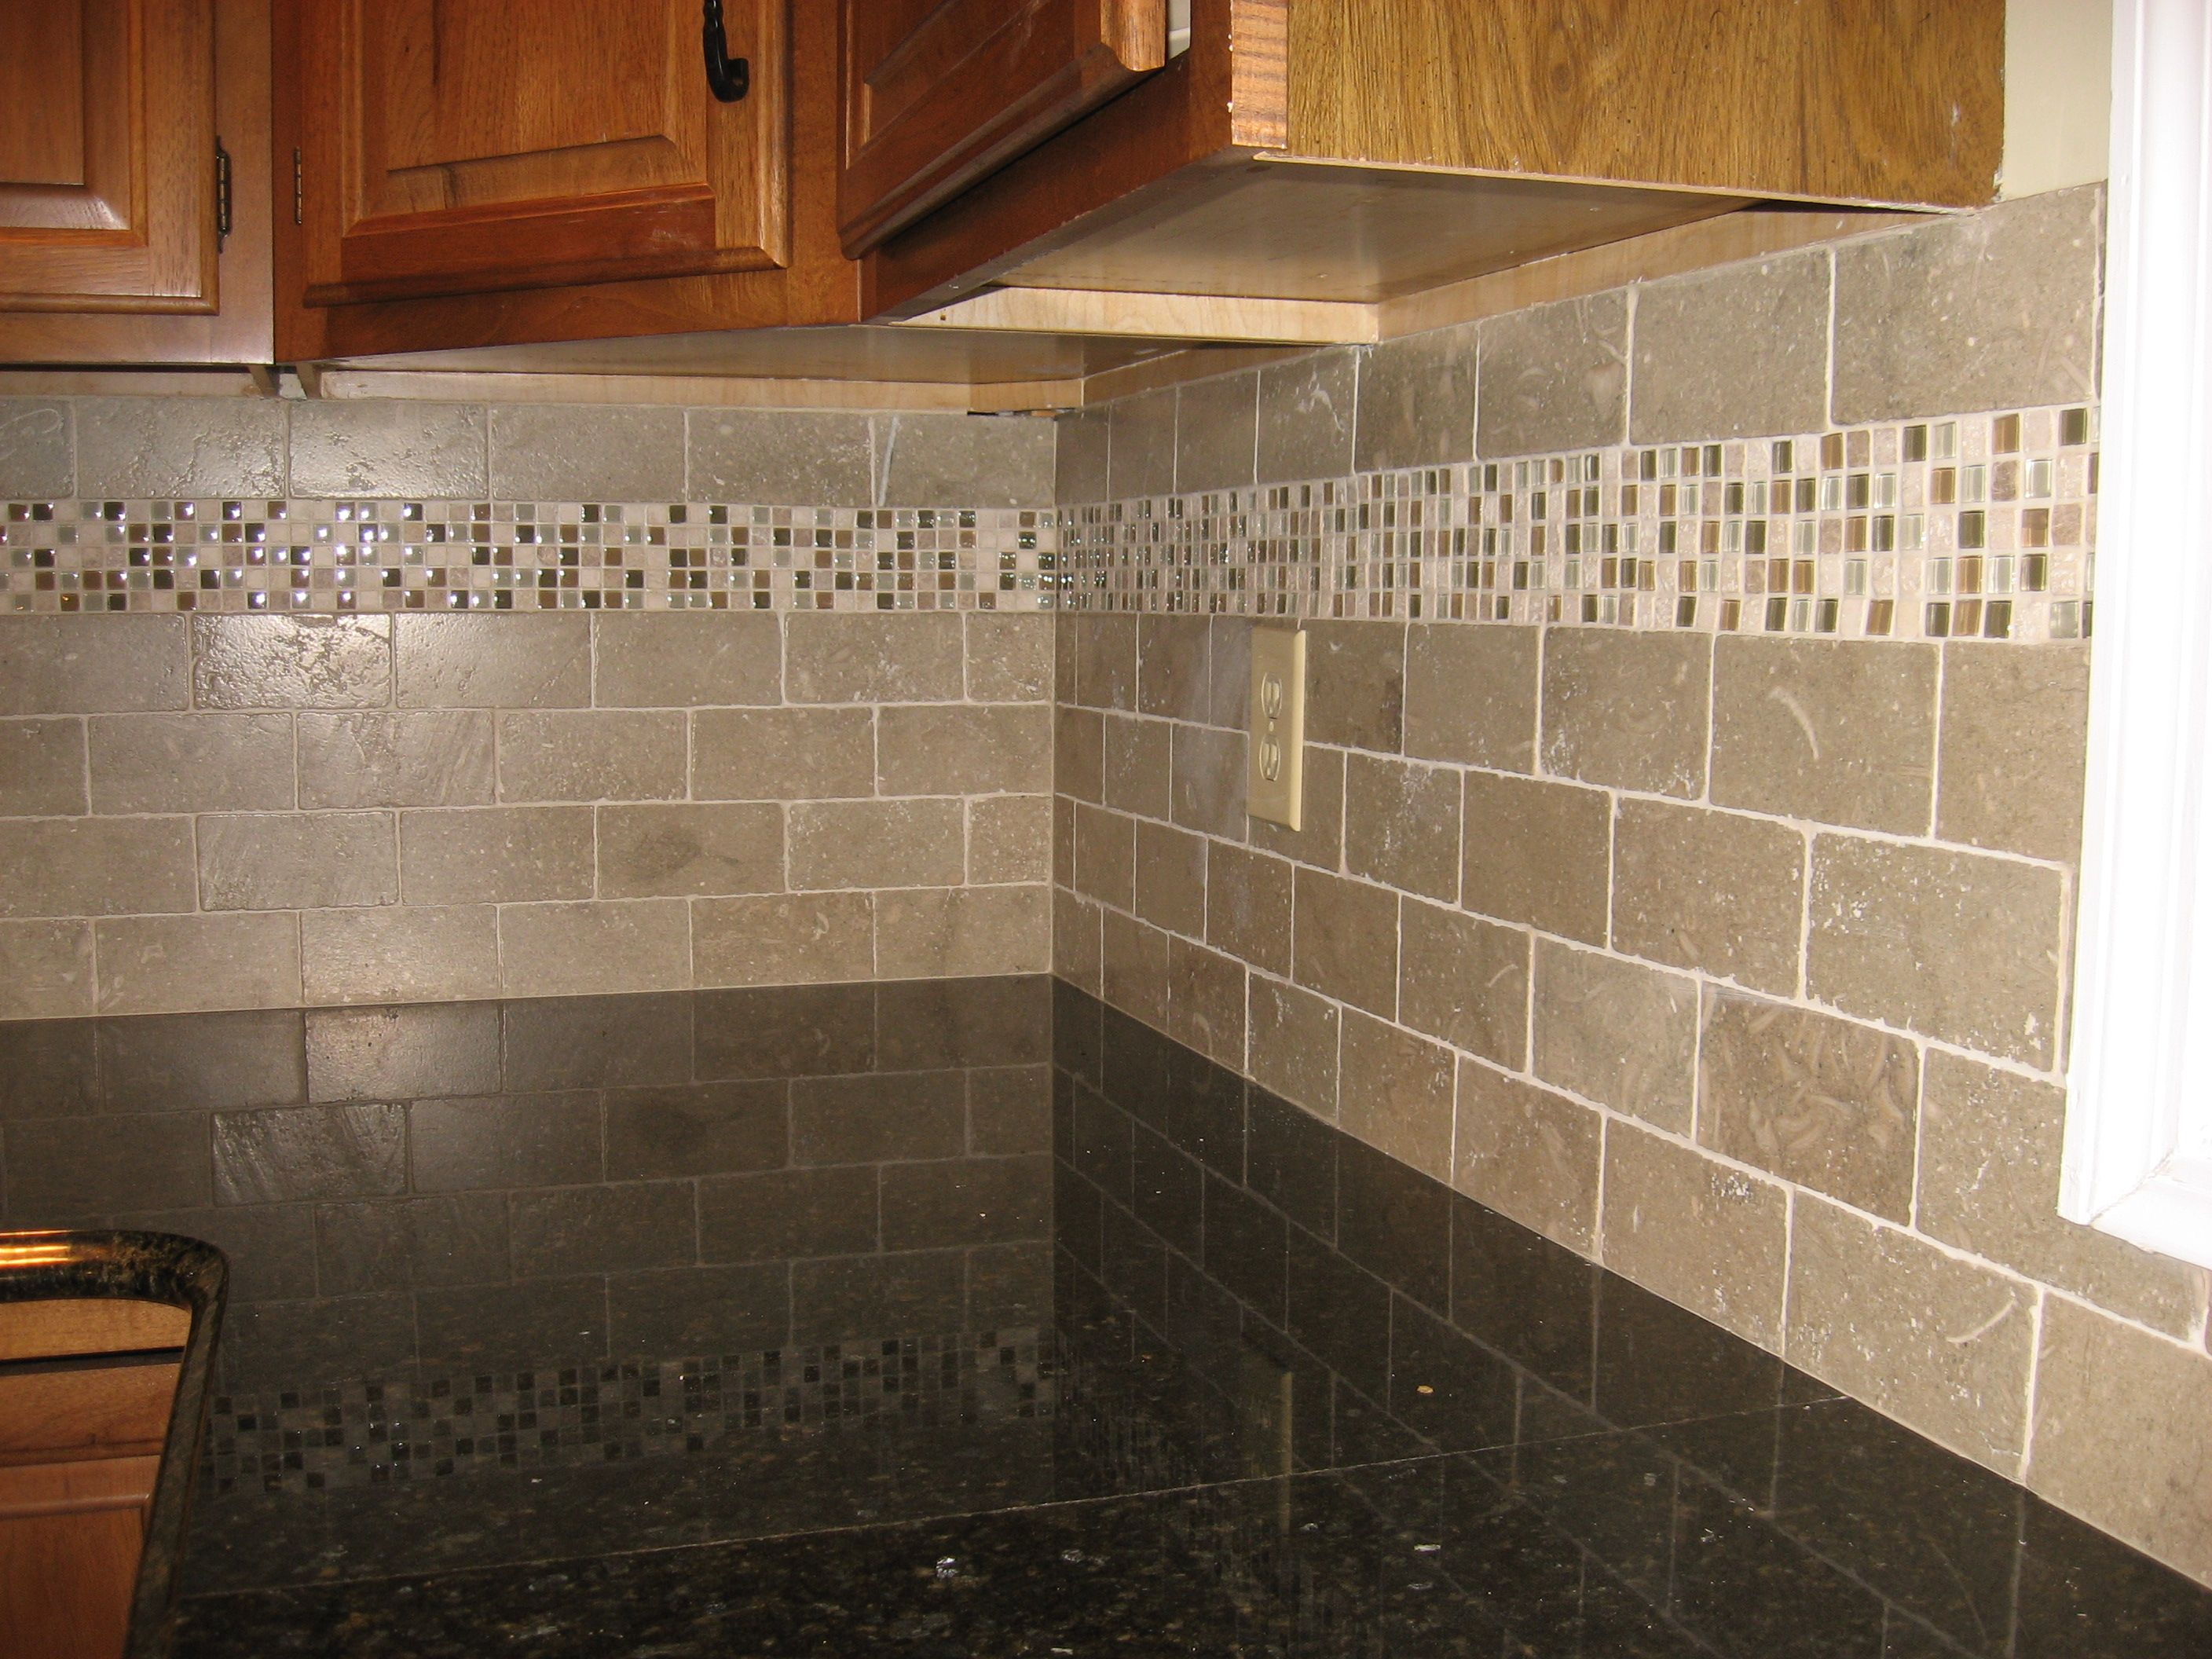 Subway tiles with mosaic accents backsplash with tumbled subway tiles with mosaic accents backsplash with tumbled limestone subway tile and dailygadgetfo Image collections